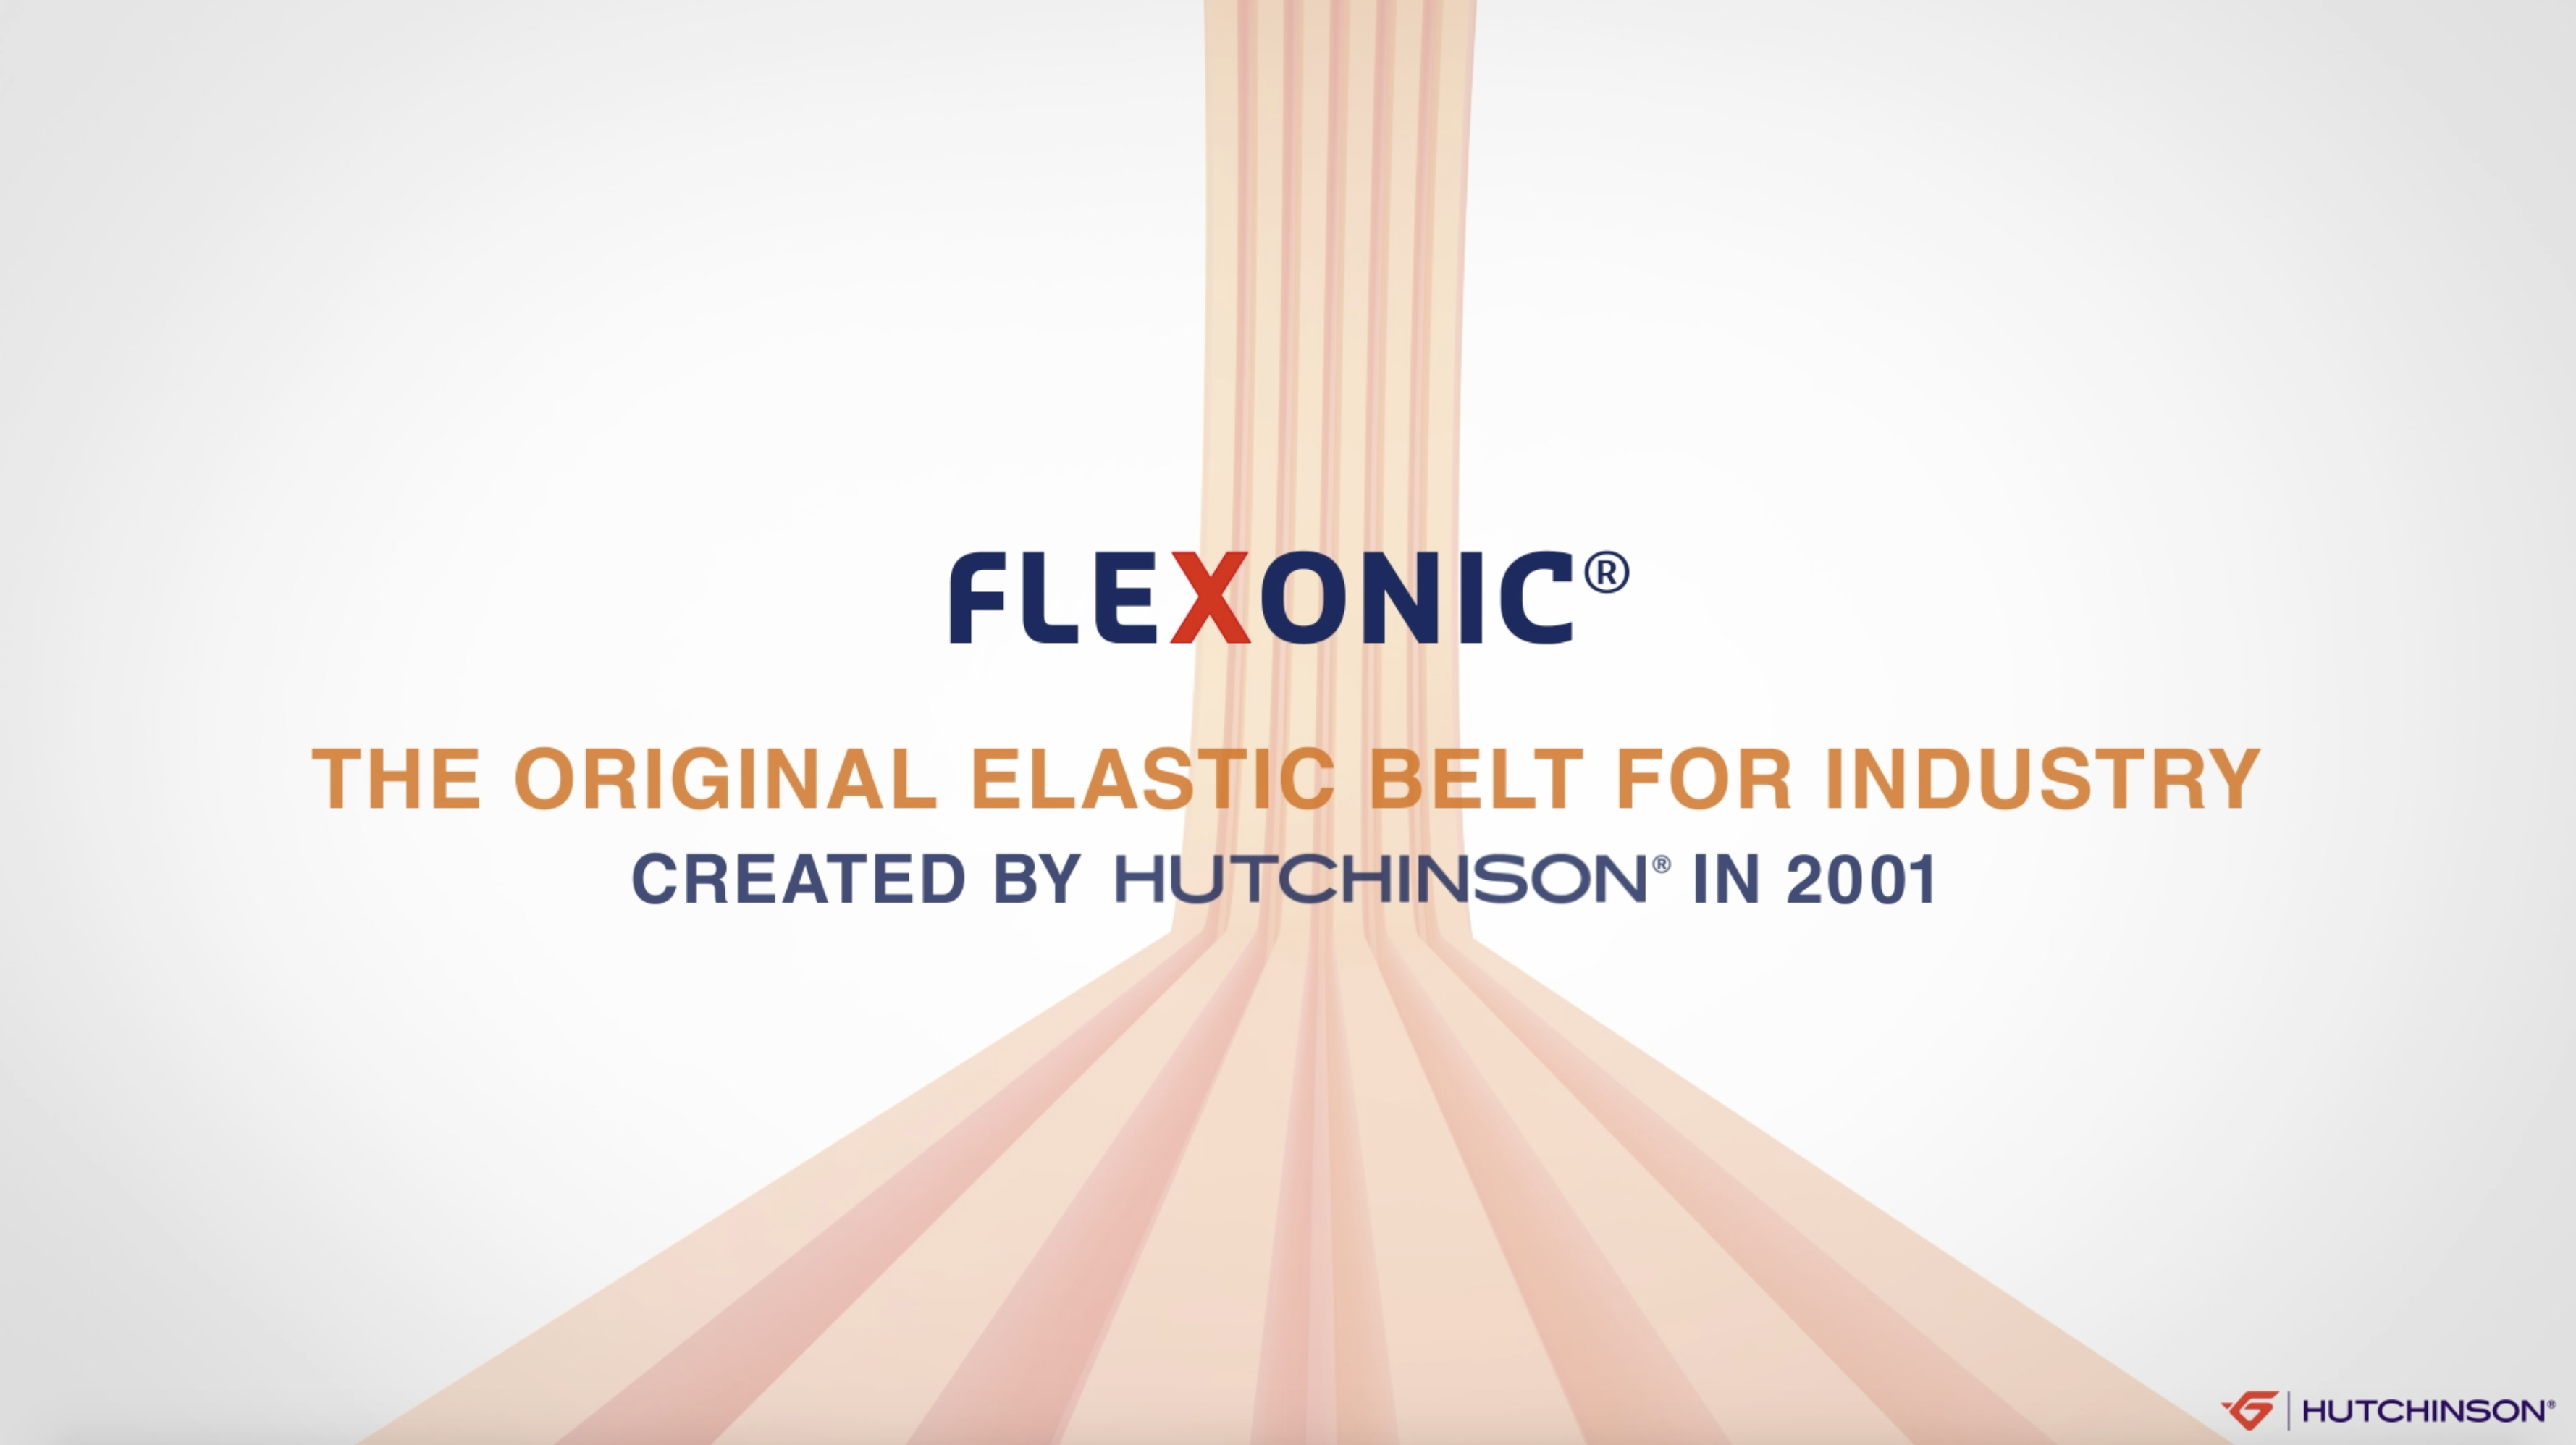 Hutchinson Flexonic video